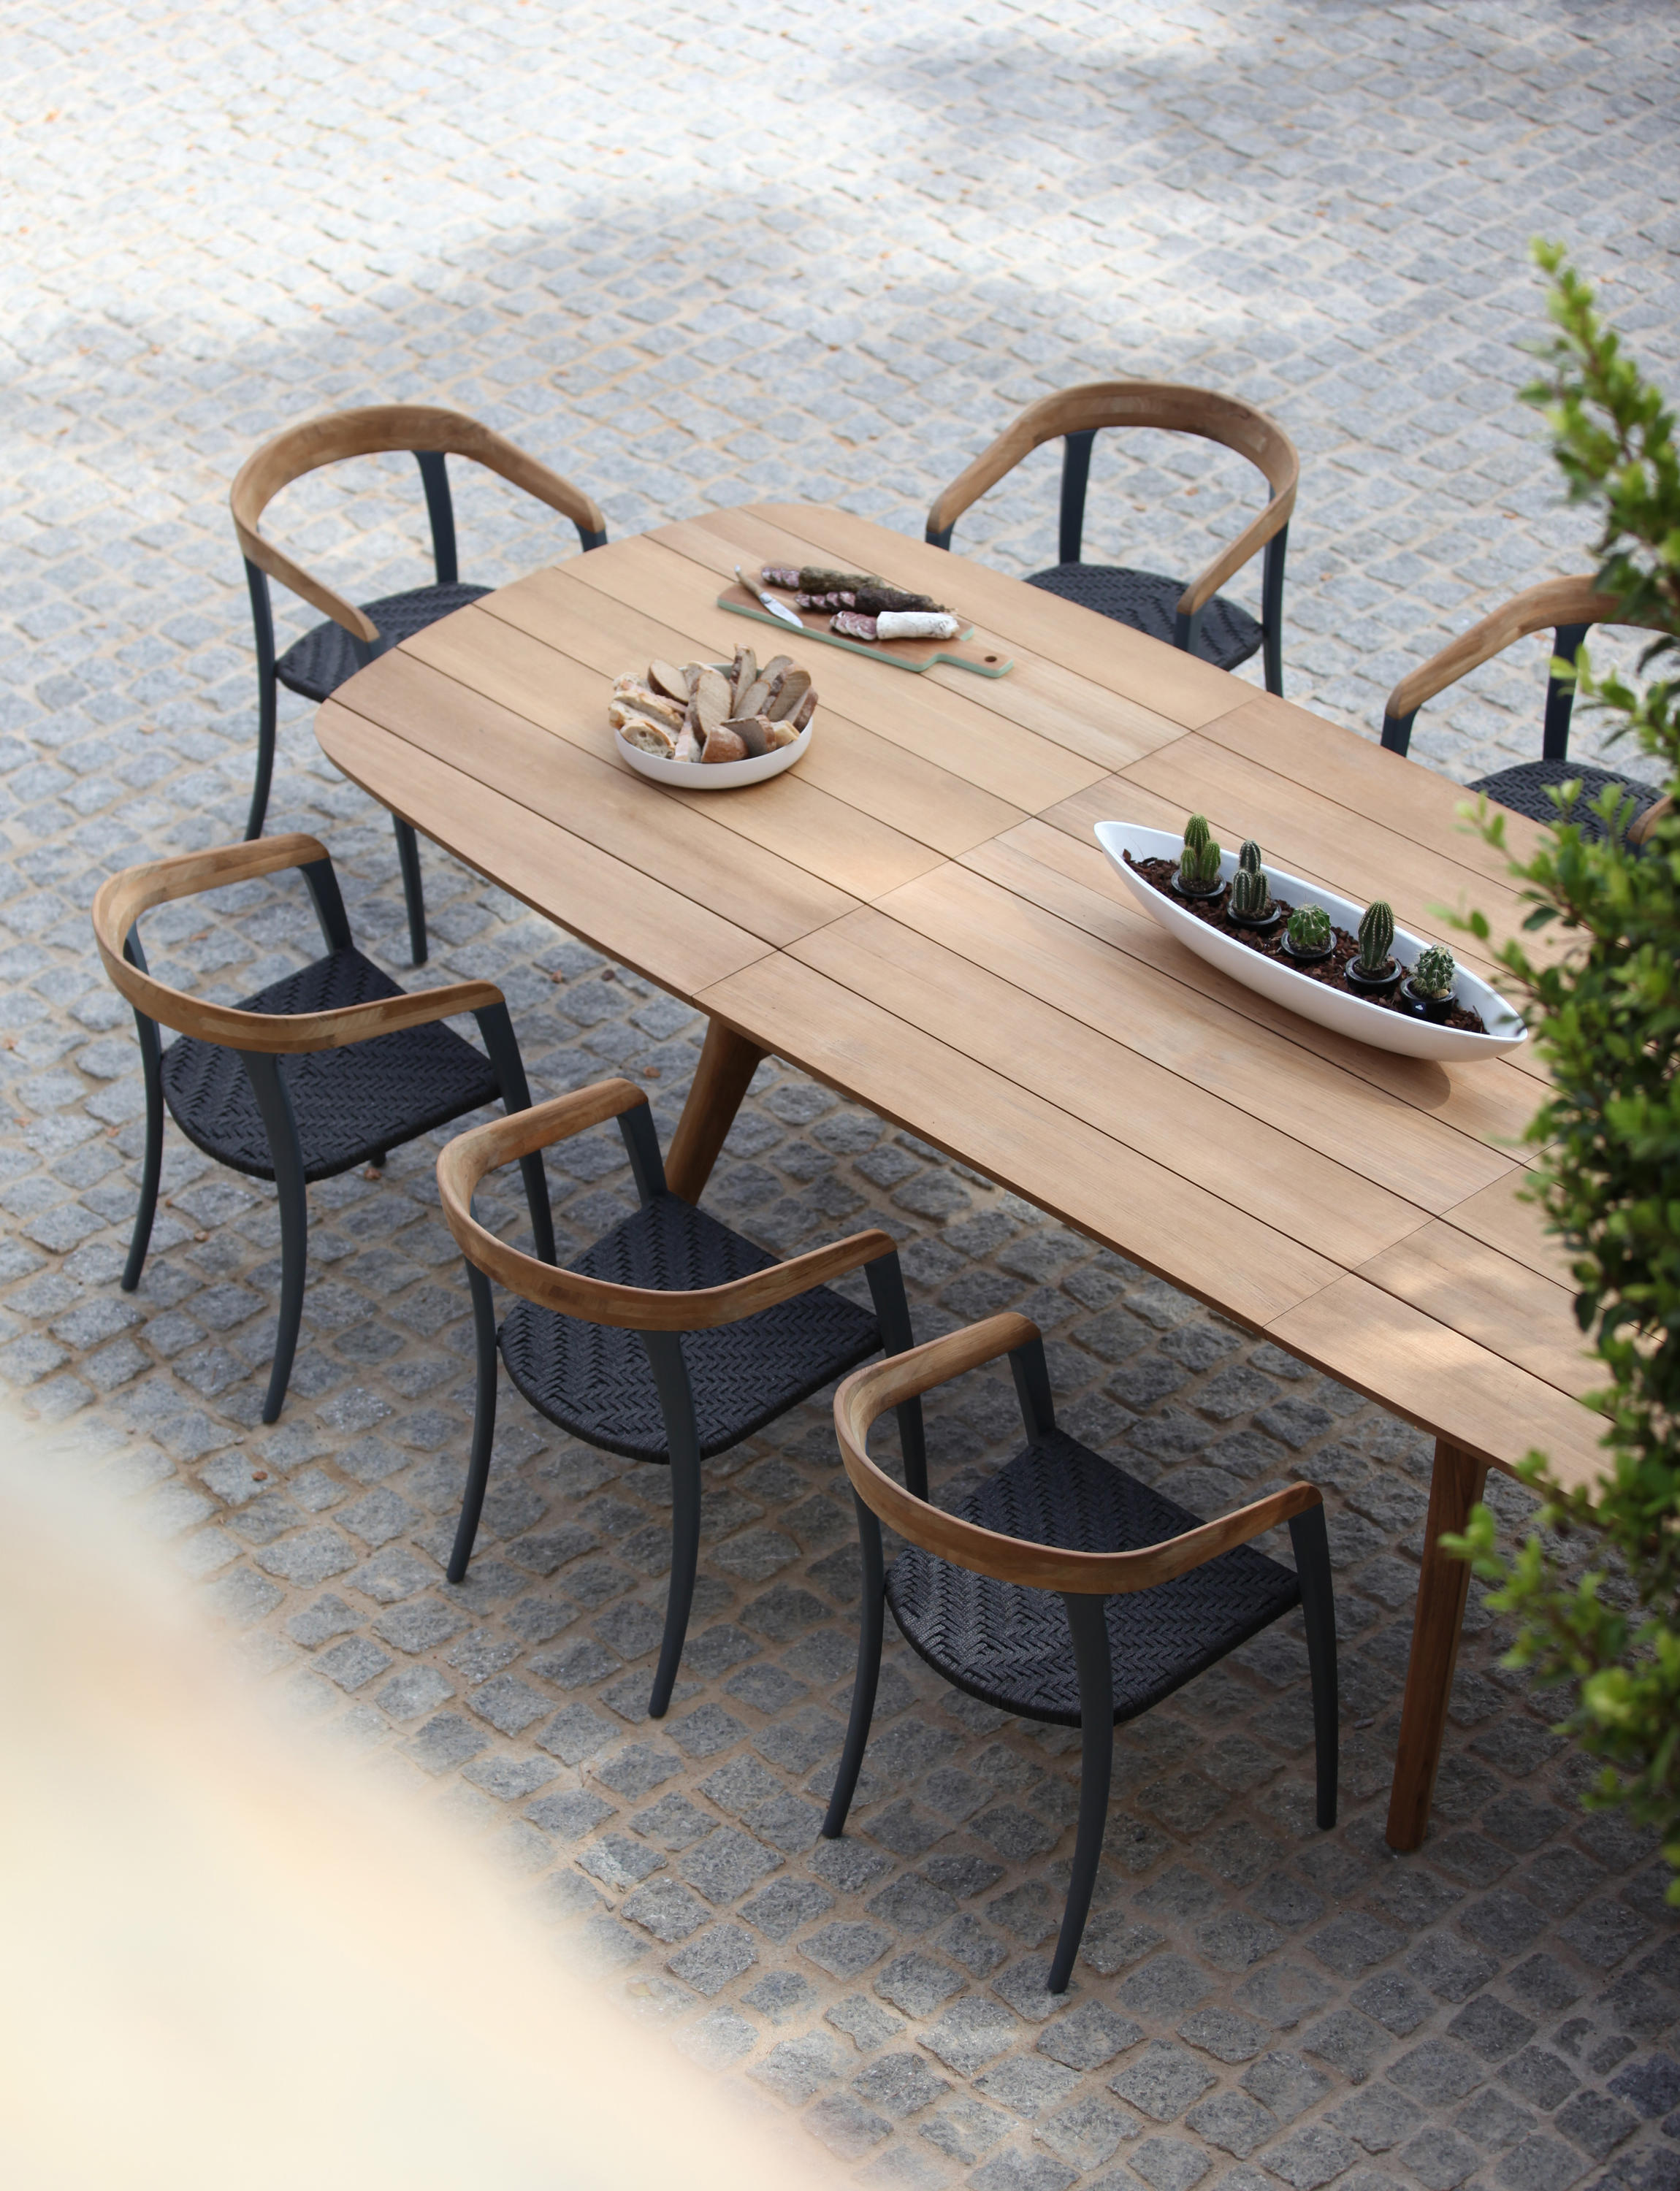 Zidiz zdz 300 dining tables from royal botania architonic for Table bois exterieur